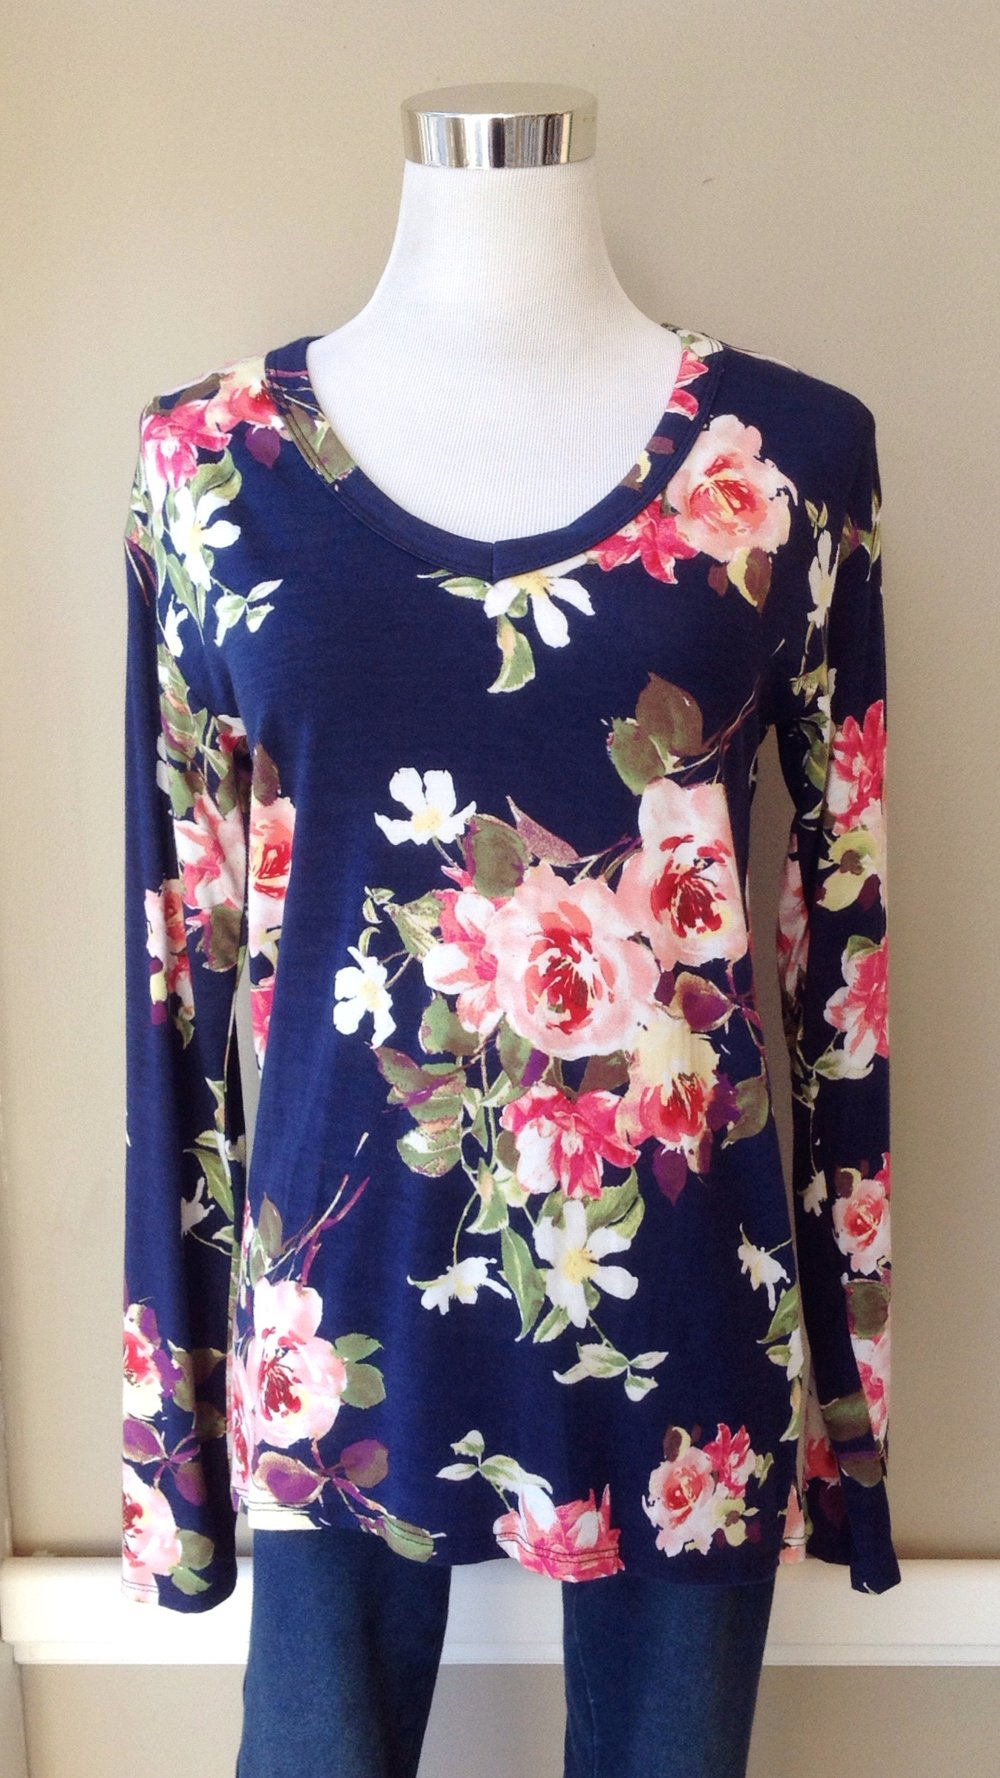 Floral print top in navy/multi, $32